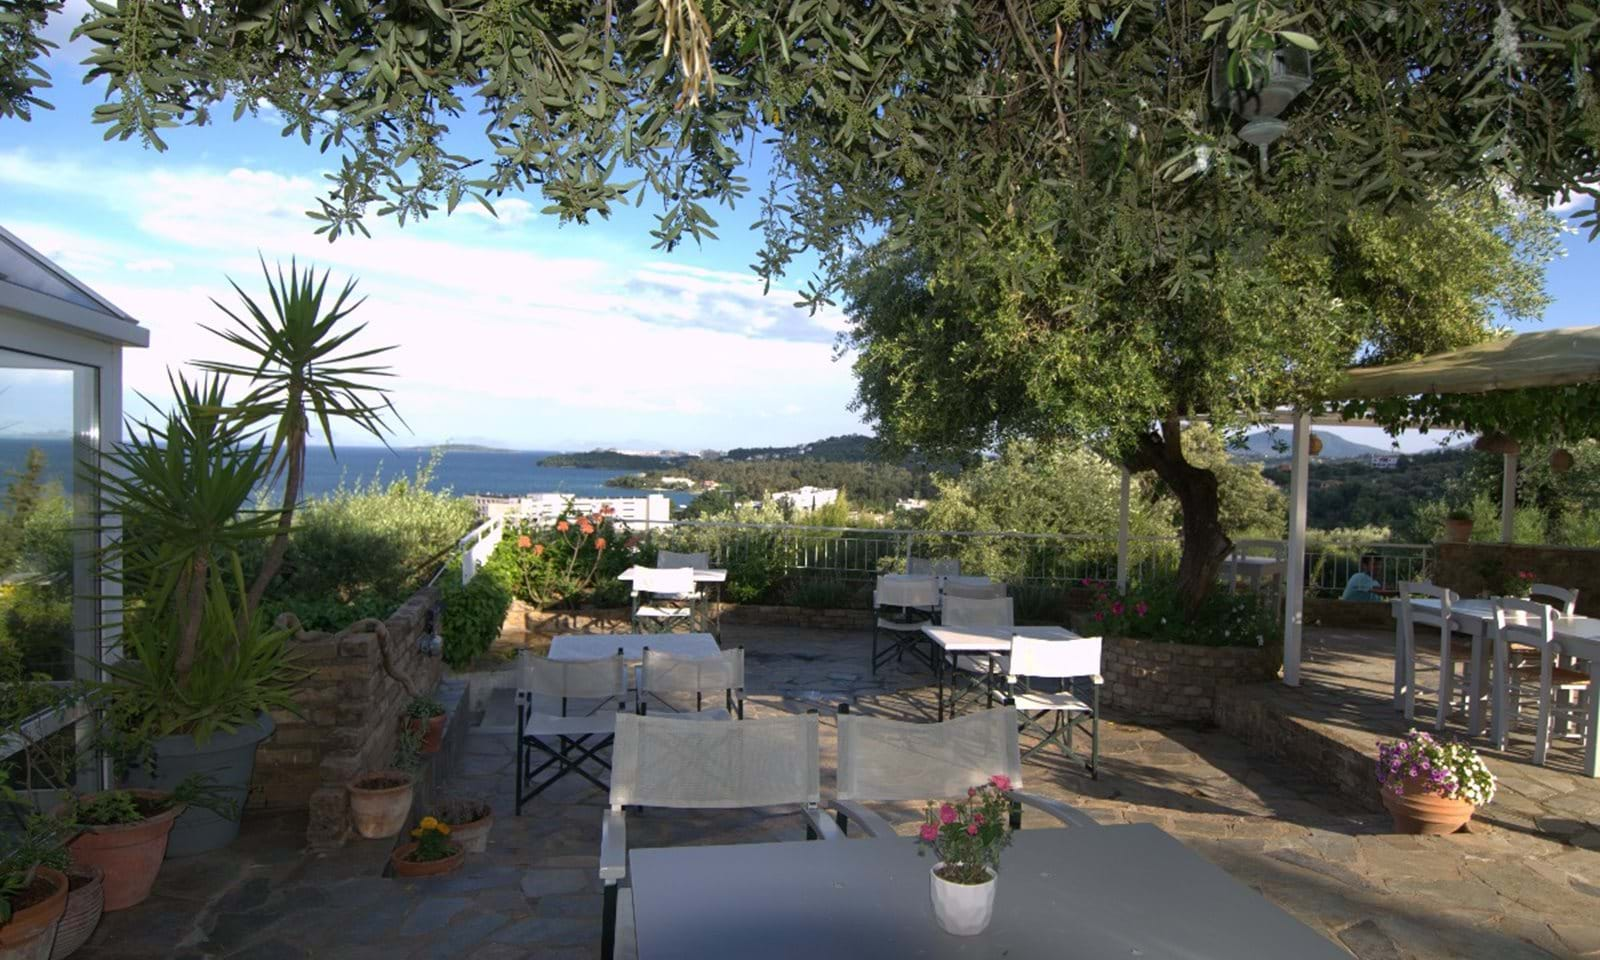 Hotels for sale in Corfu